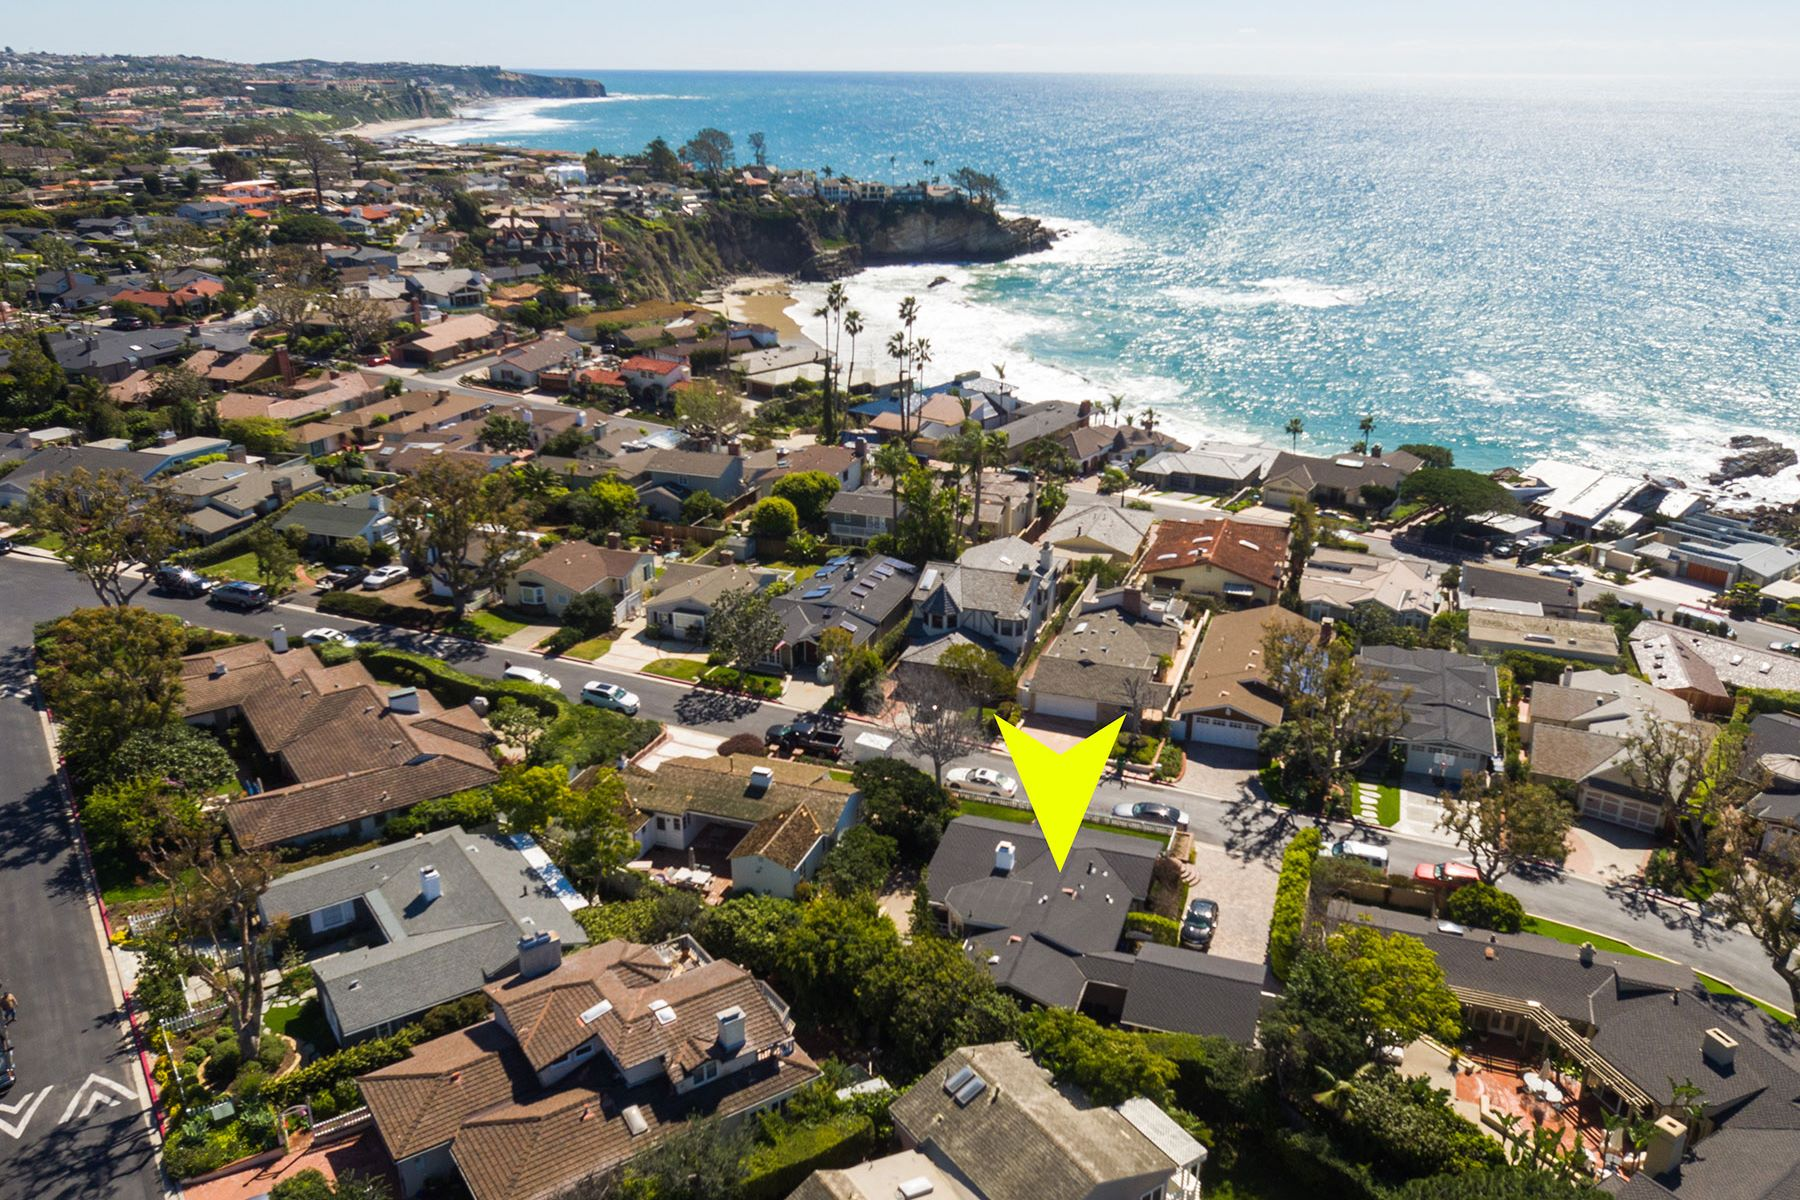 Single Family Home for Sale at 3 S. Portola Laguna Beach, California, 92651 United States